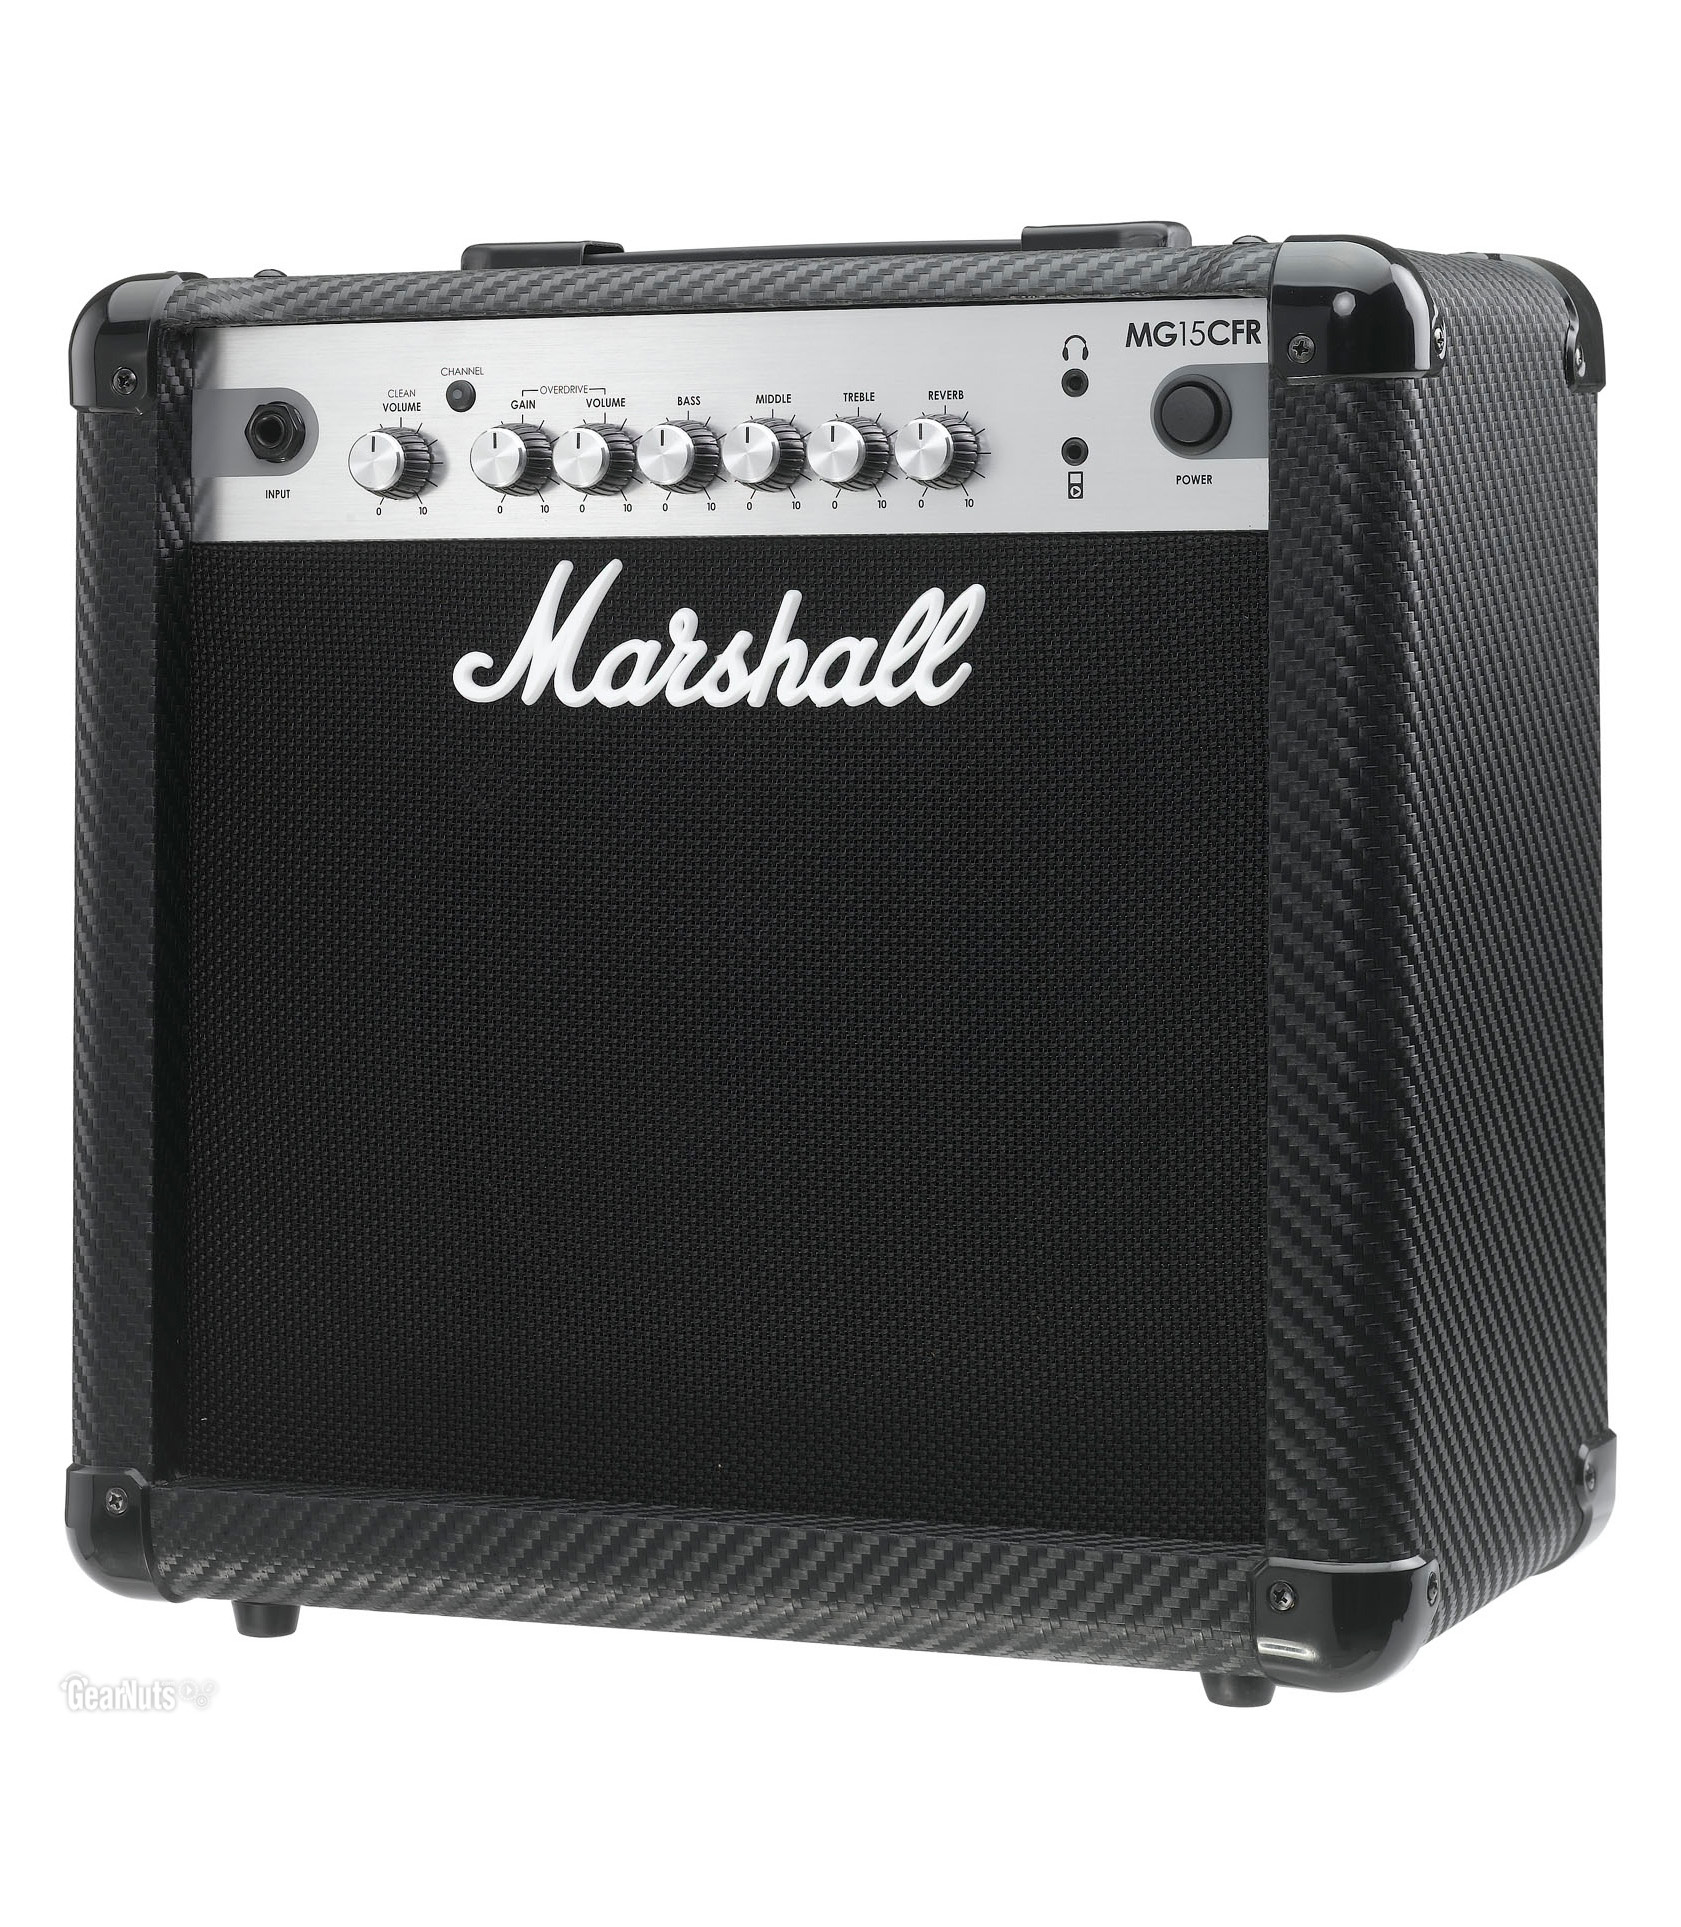 marshall - MG15CFR Solid state Guitar Amp 2 Channe - Melody House